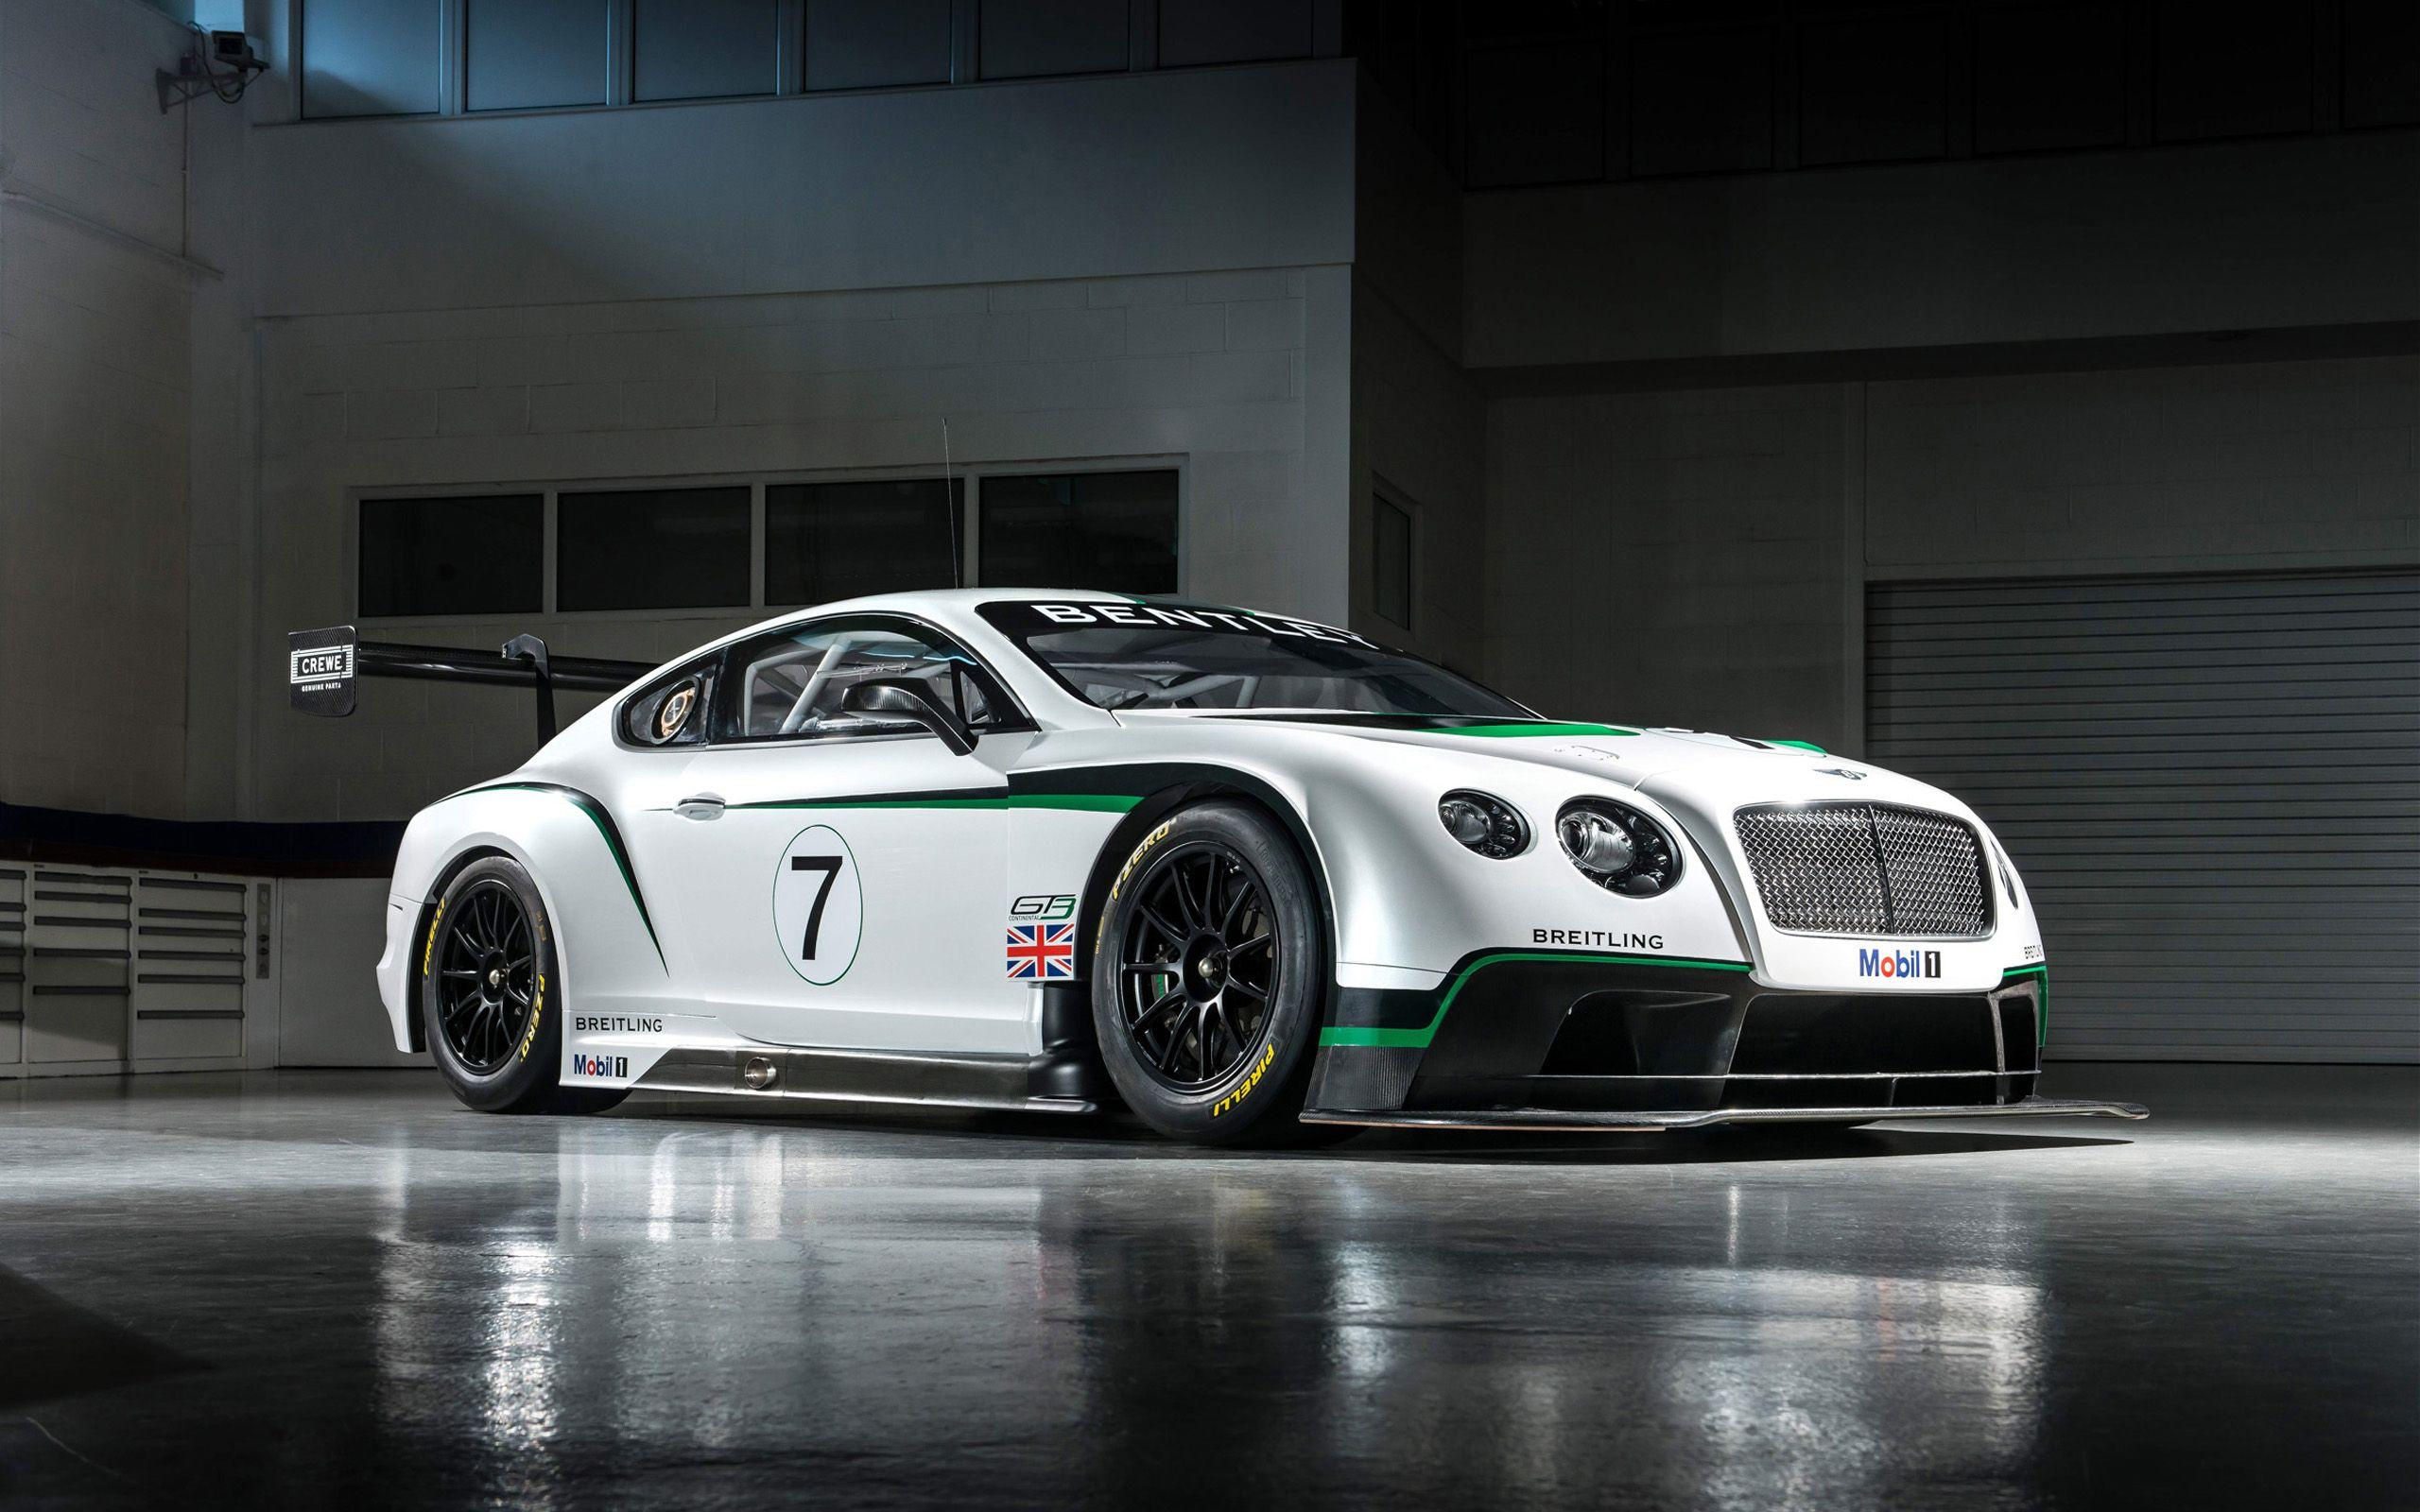 2013 Bentley Continental GT3 Wallpaper | HD Car Wallpapers